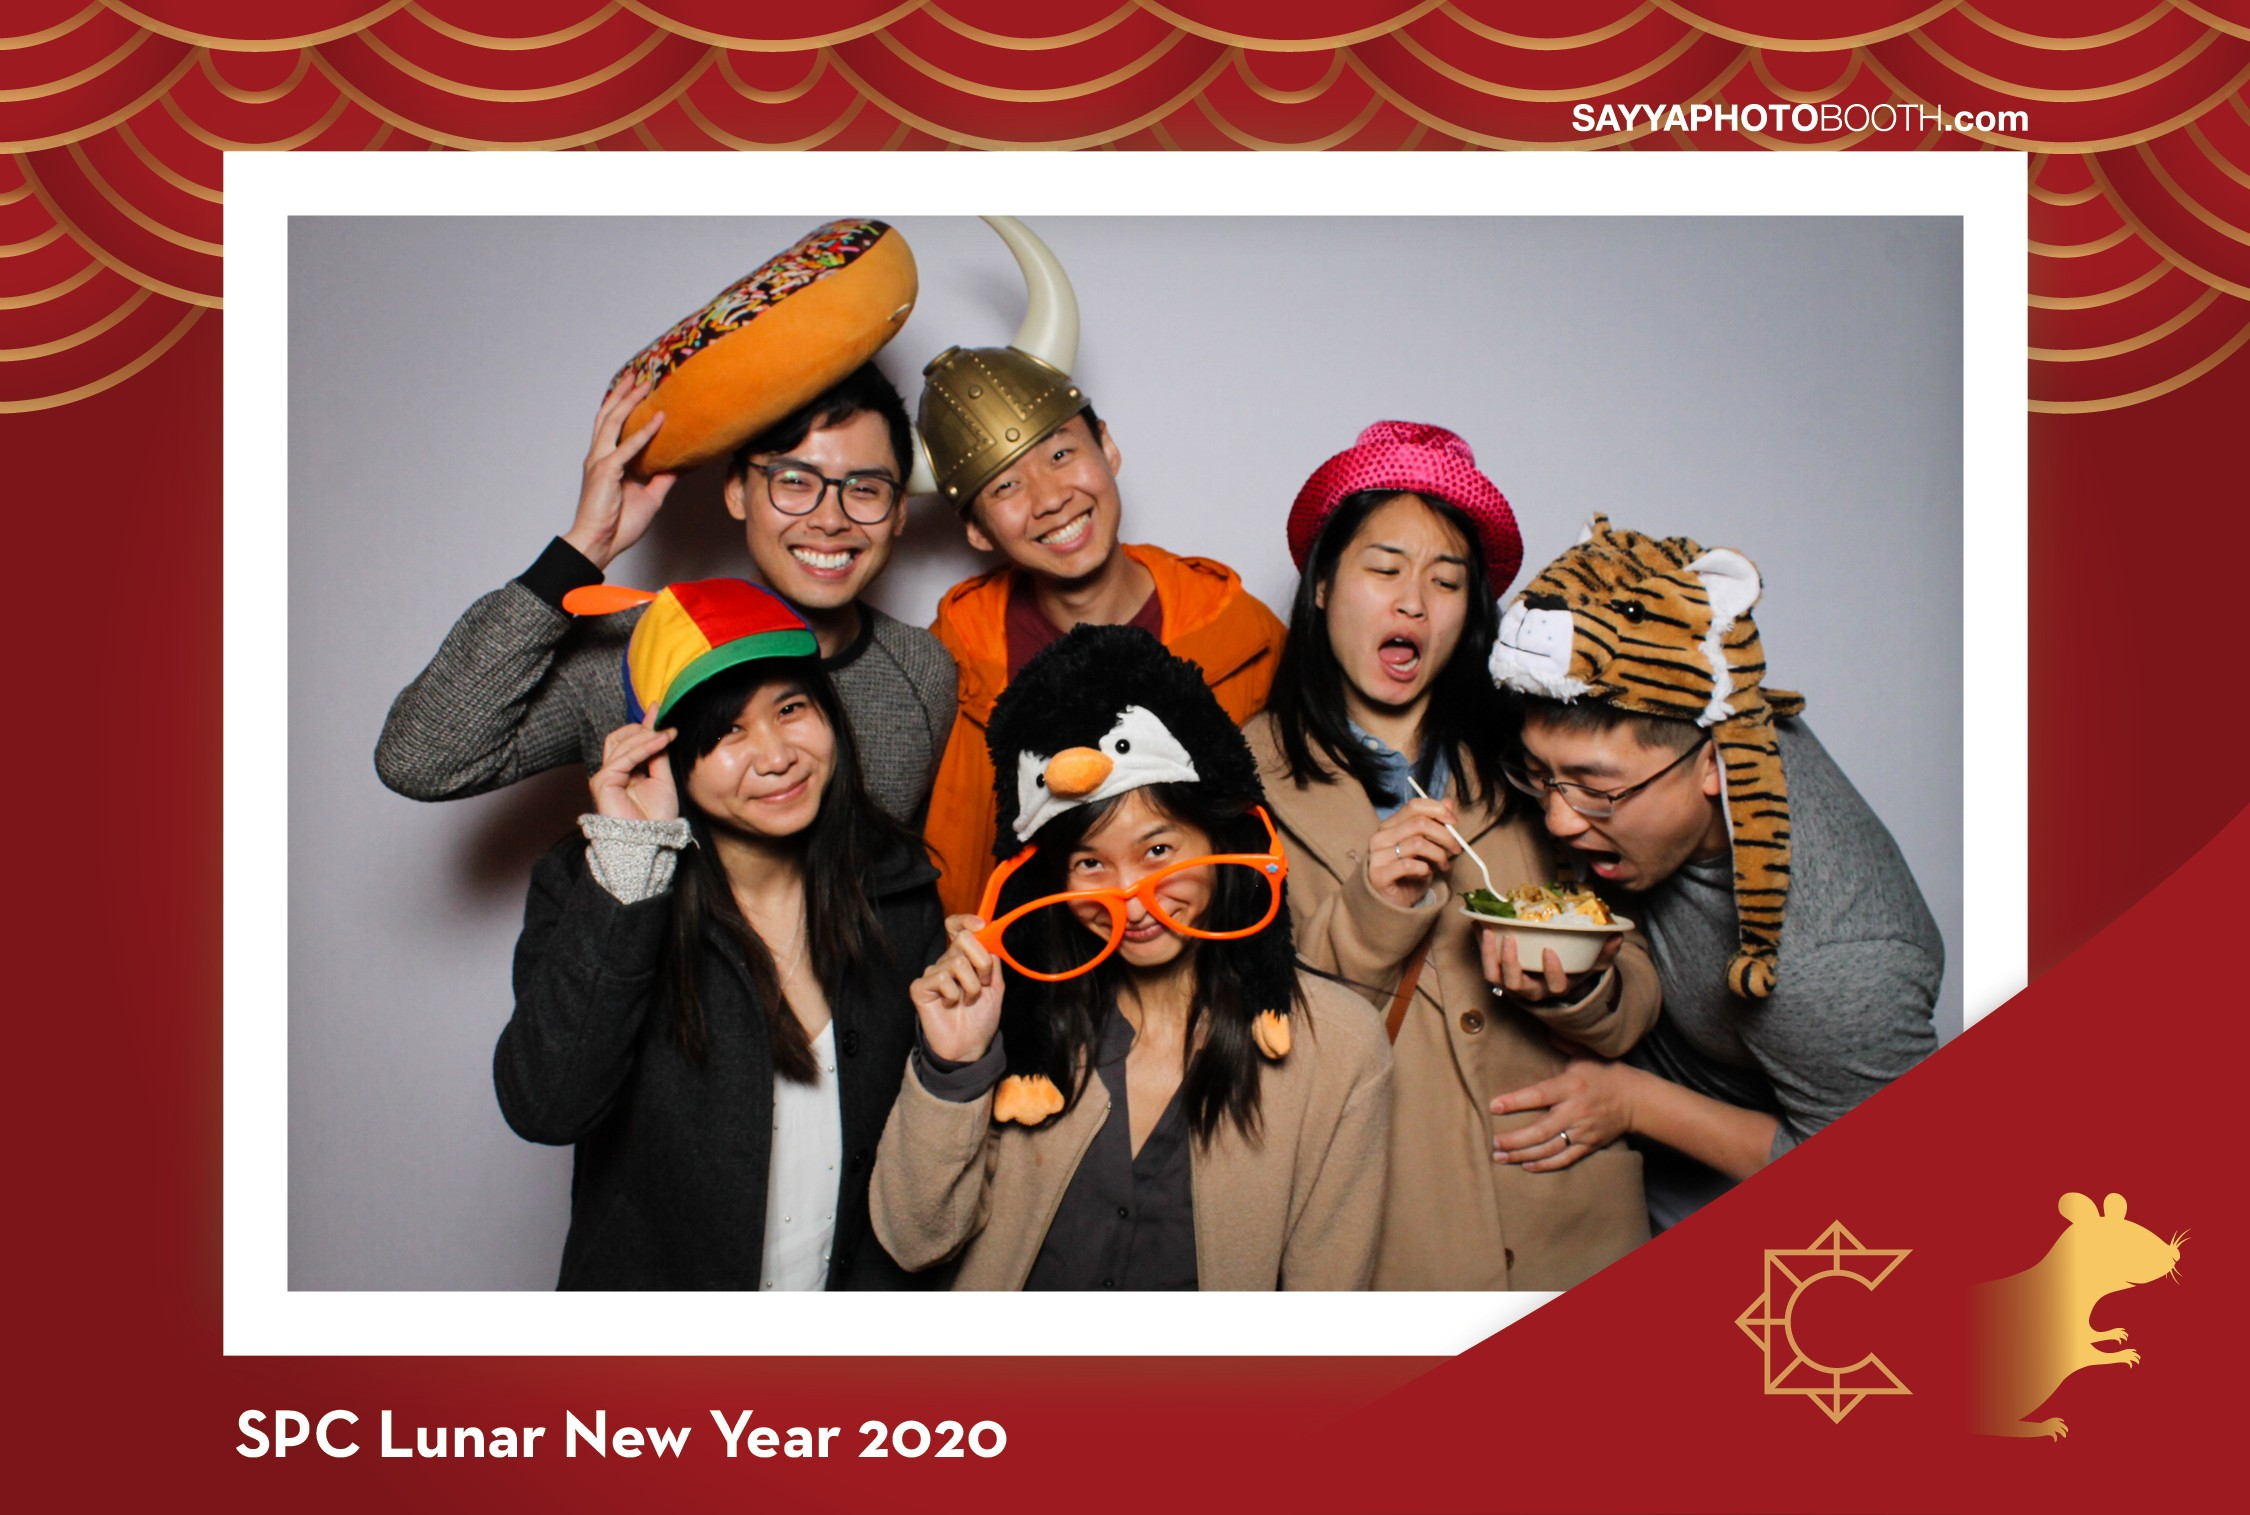 SPC Lunar New Year Party